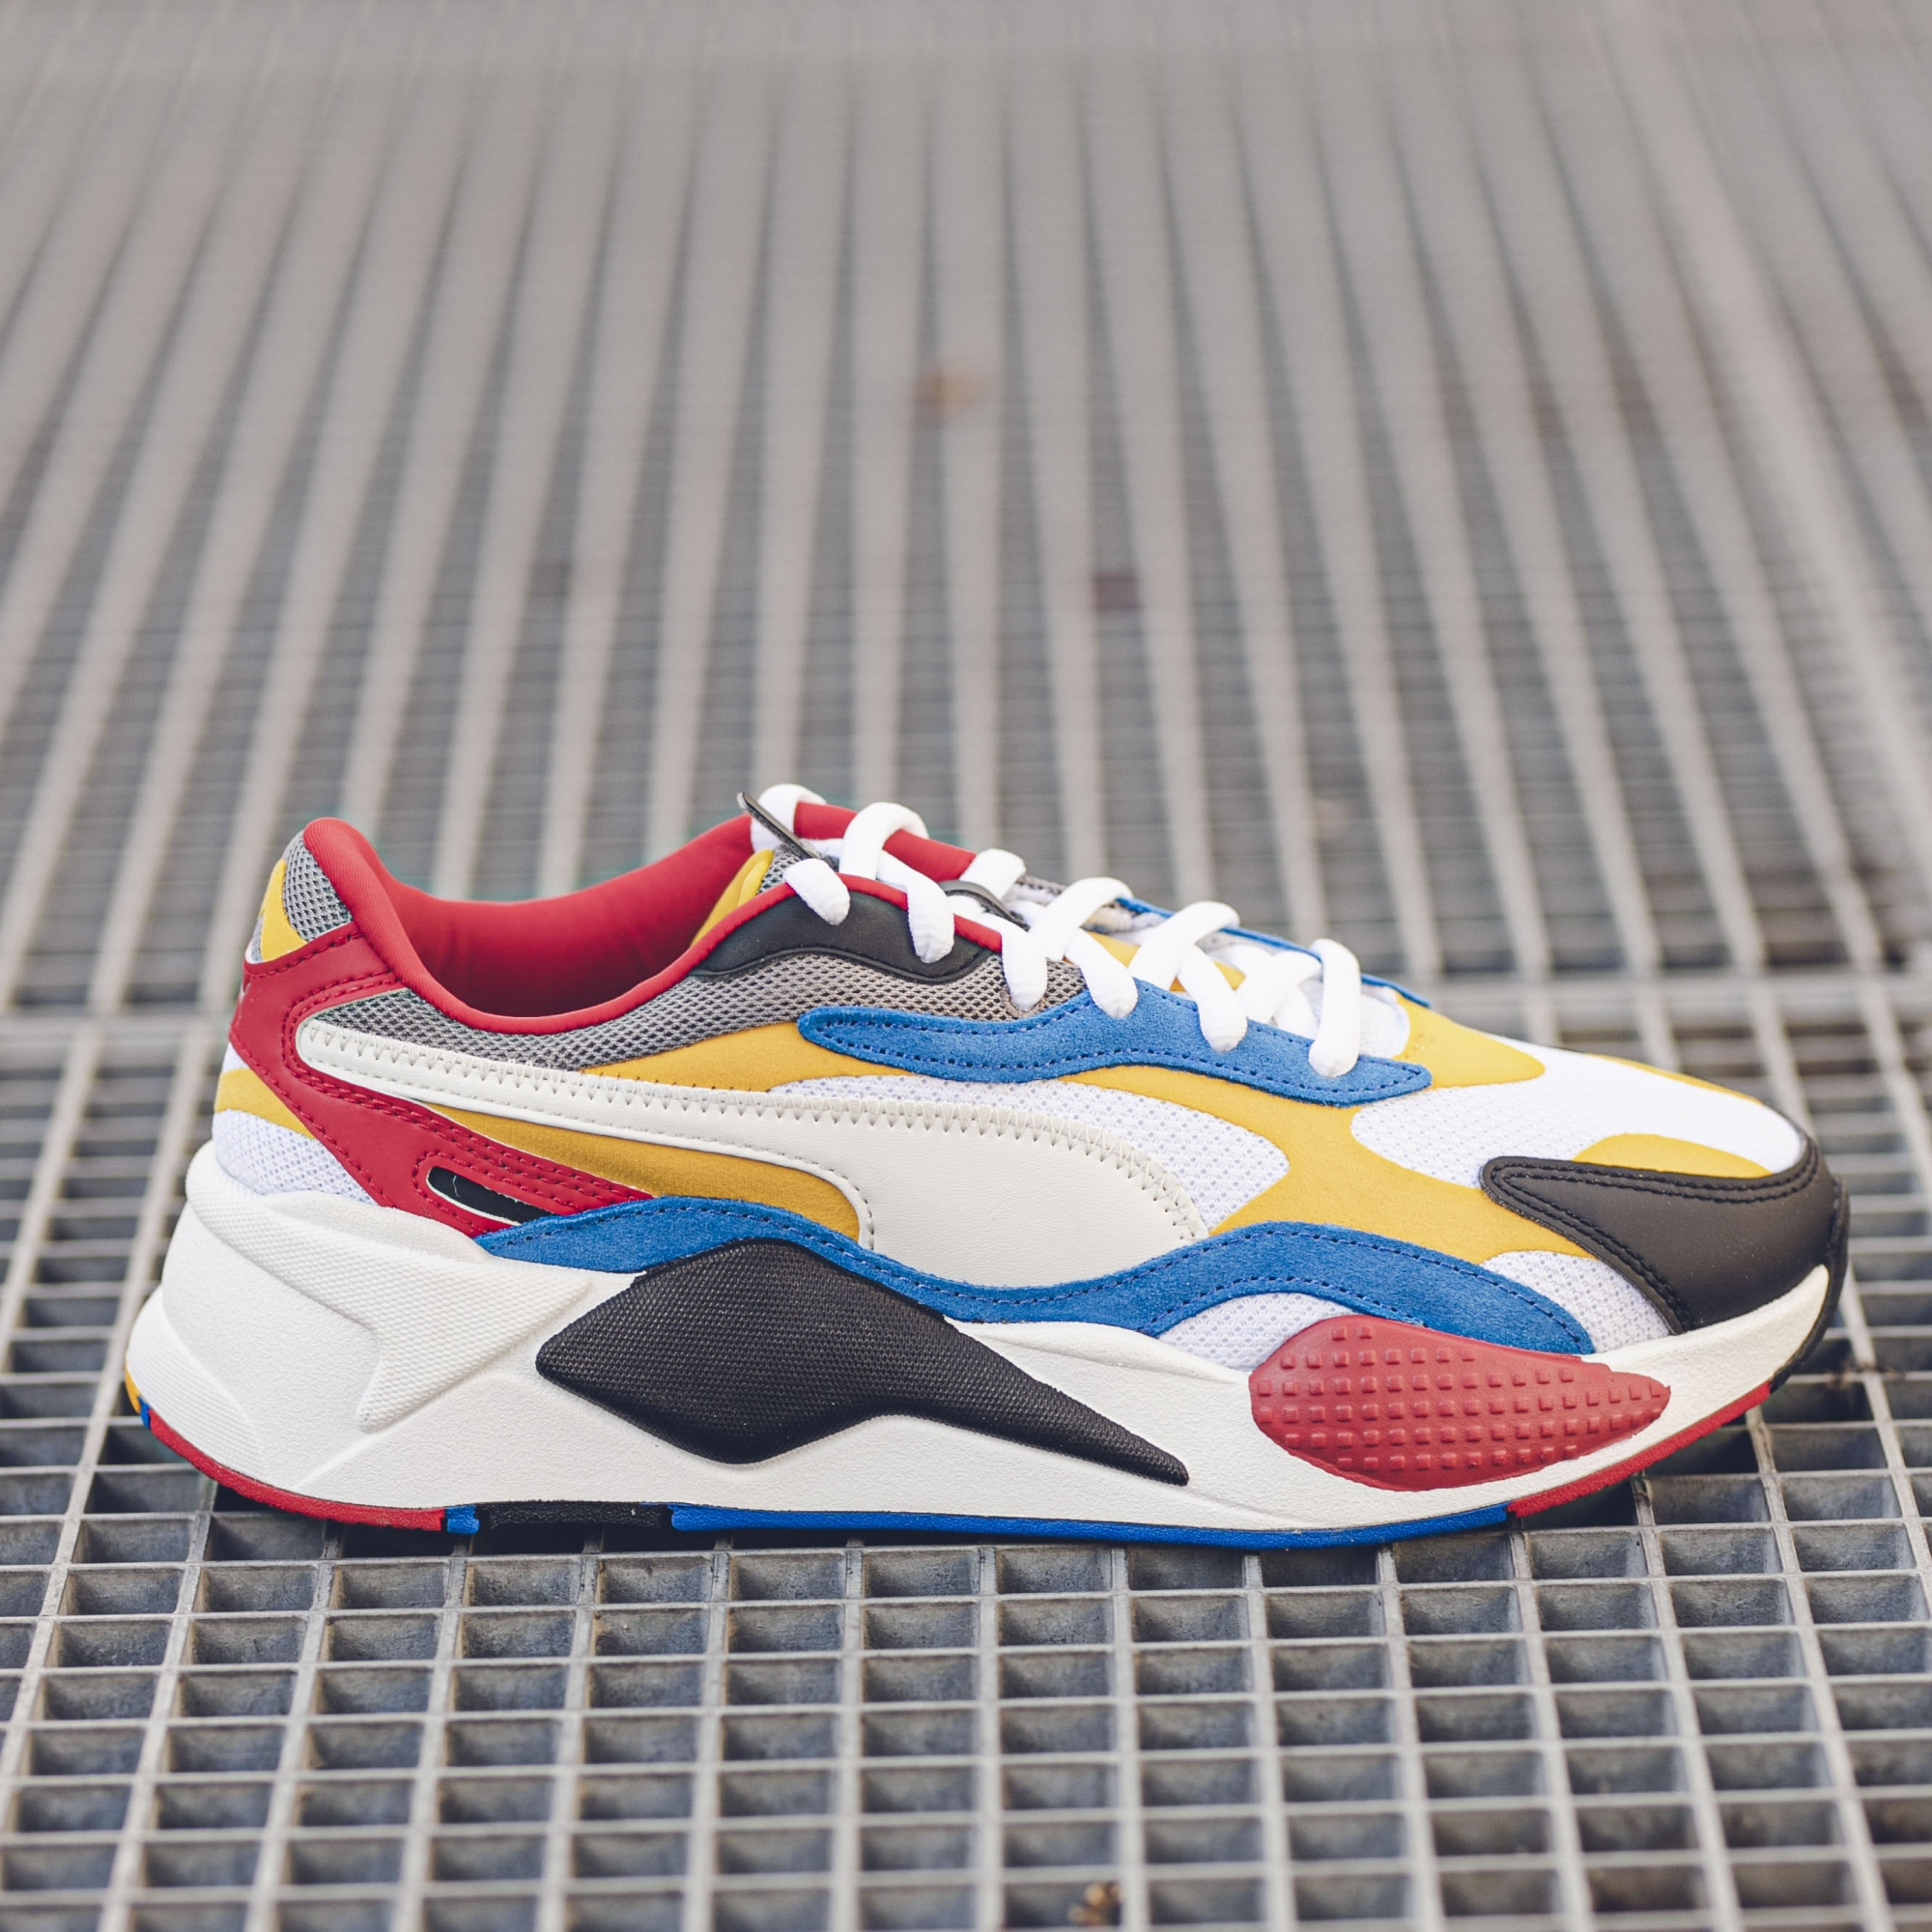 PUMA RS-X3 PUZZLE.PUMA WHITE SPECTRA/YELLOW/BLACK - Slash Store